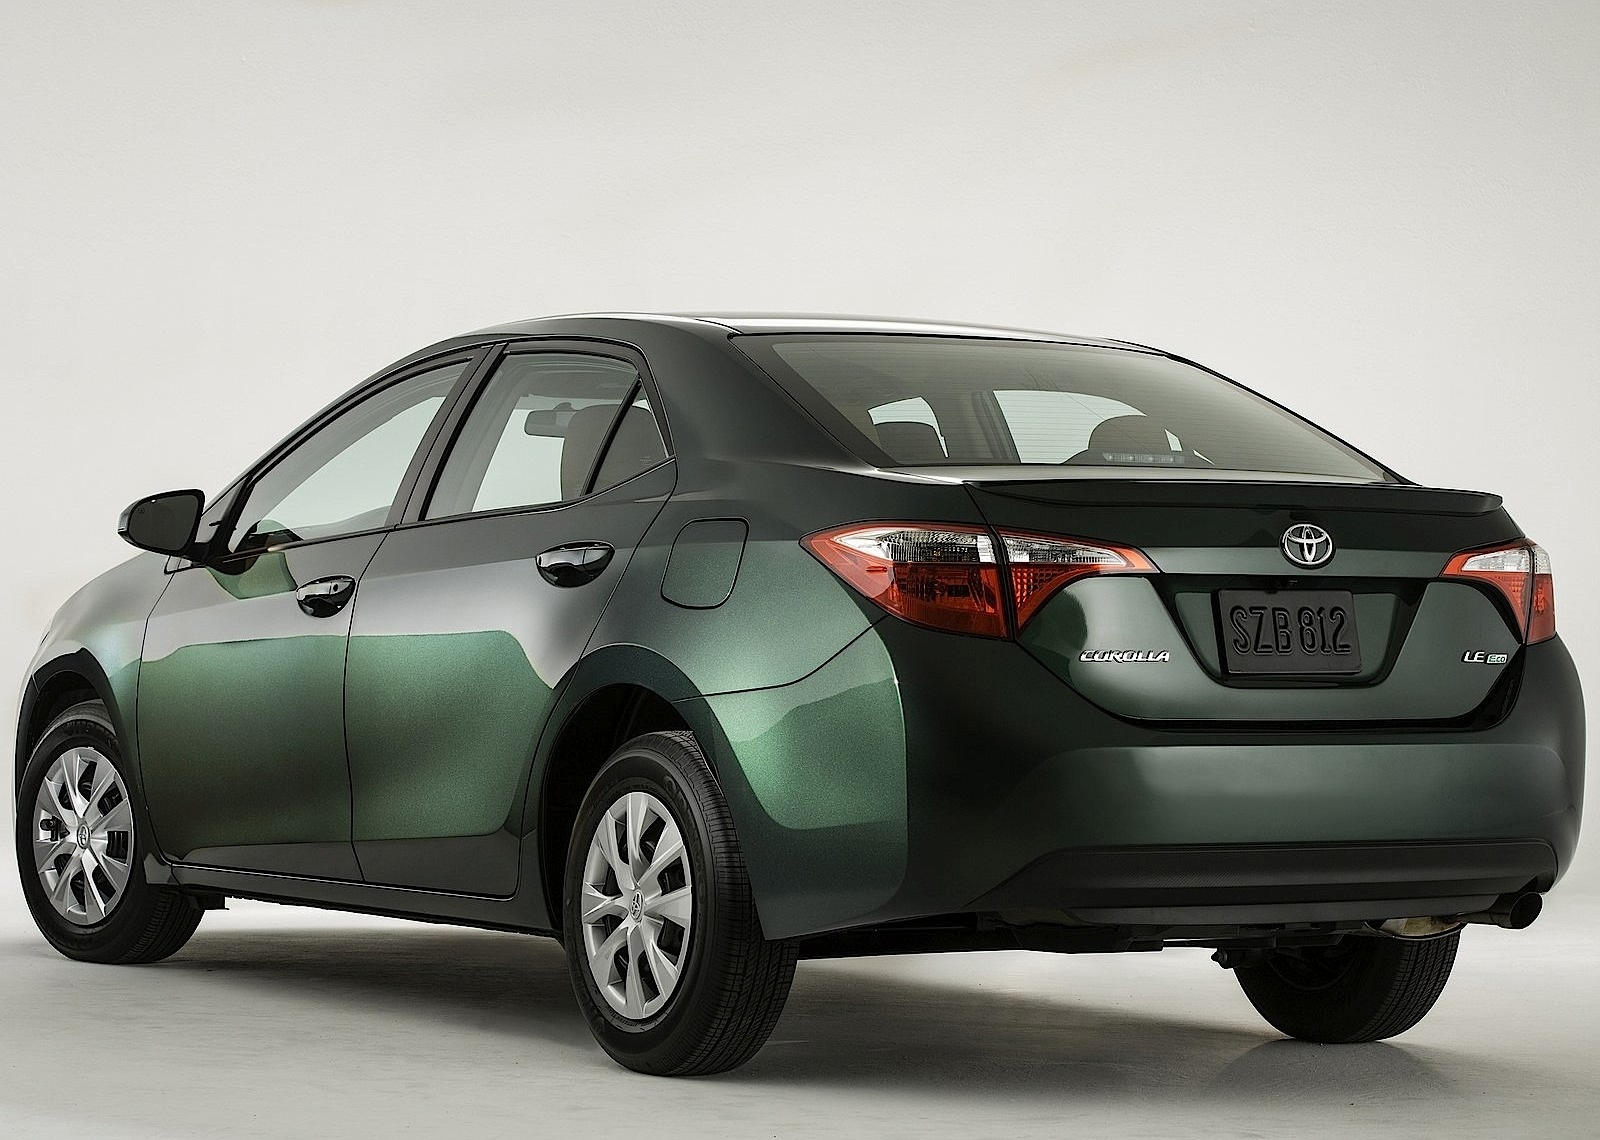 toyota corolla us specs 2013 2014 2015 2016 2017 2018 autoevolution. Black Bedroom Furniture Sets. Home Design Ideas